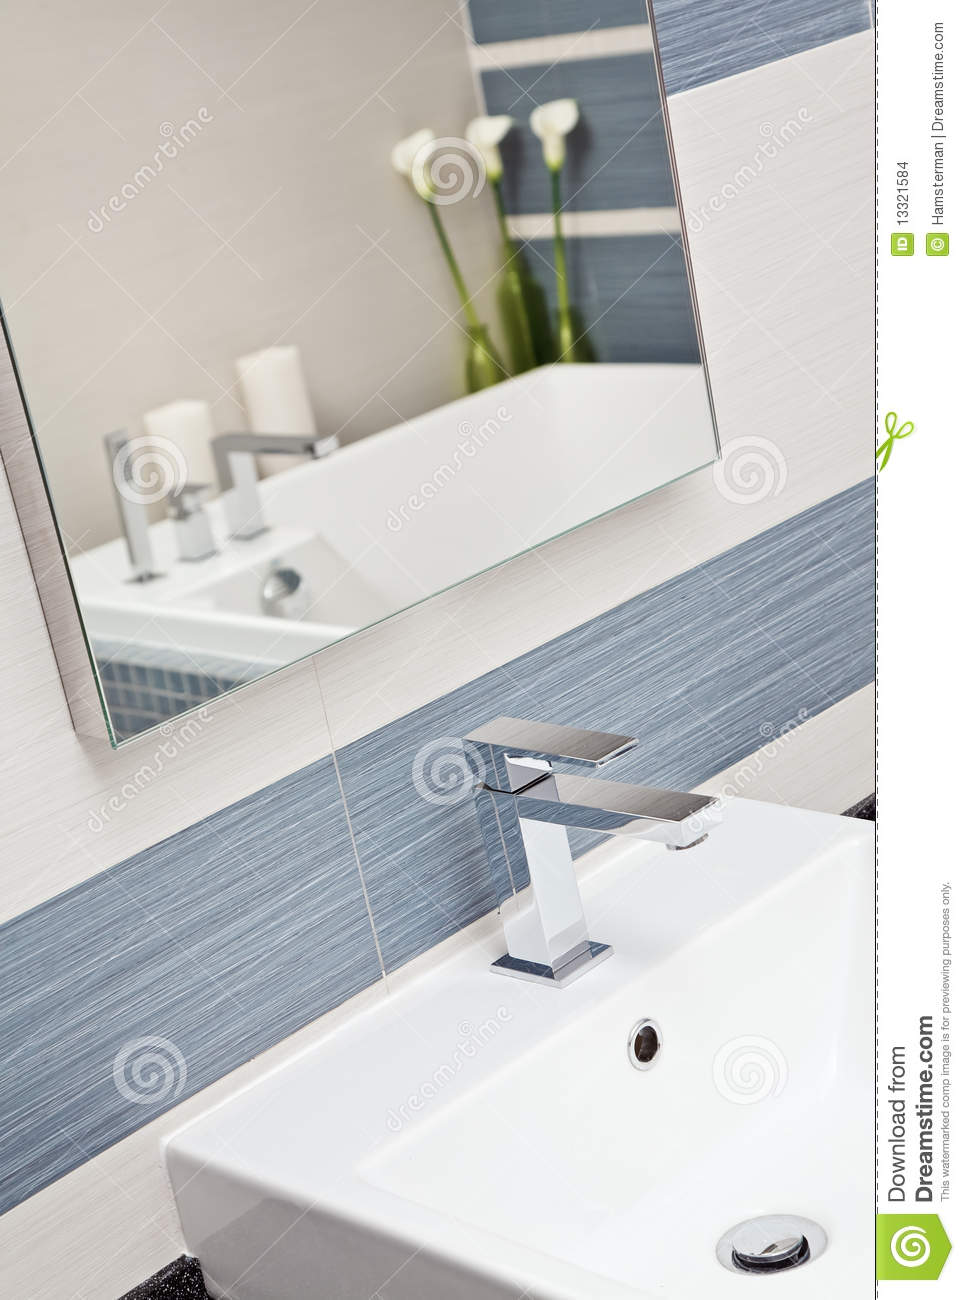 Baños Modernos Azules:Bathrooms with Gray and Blue Tones